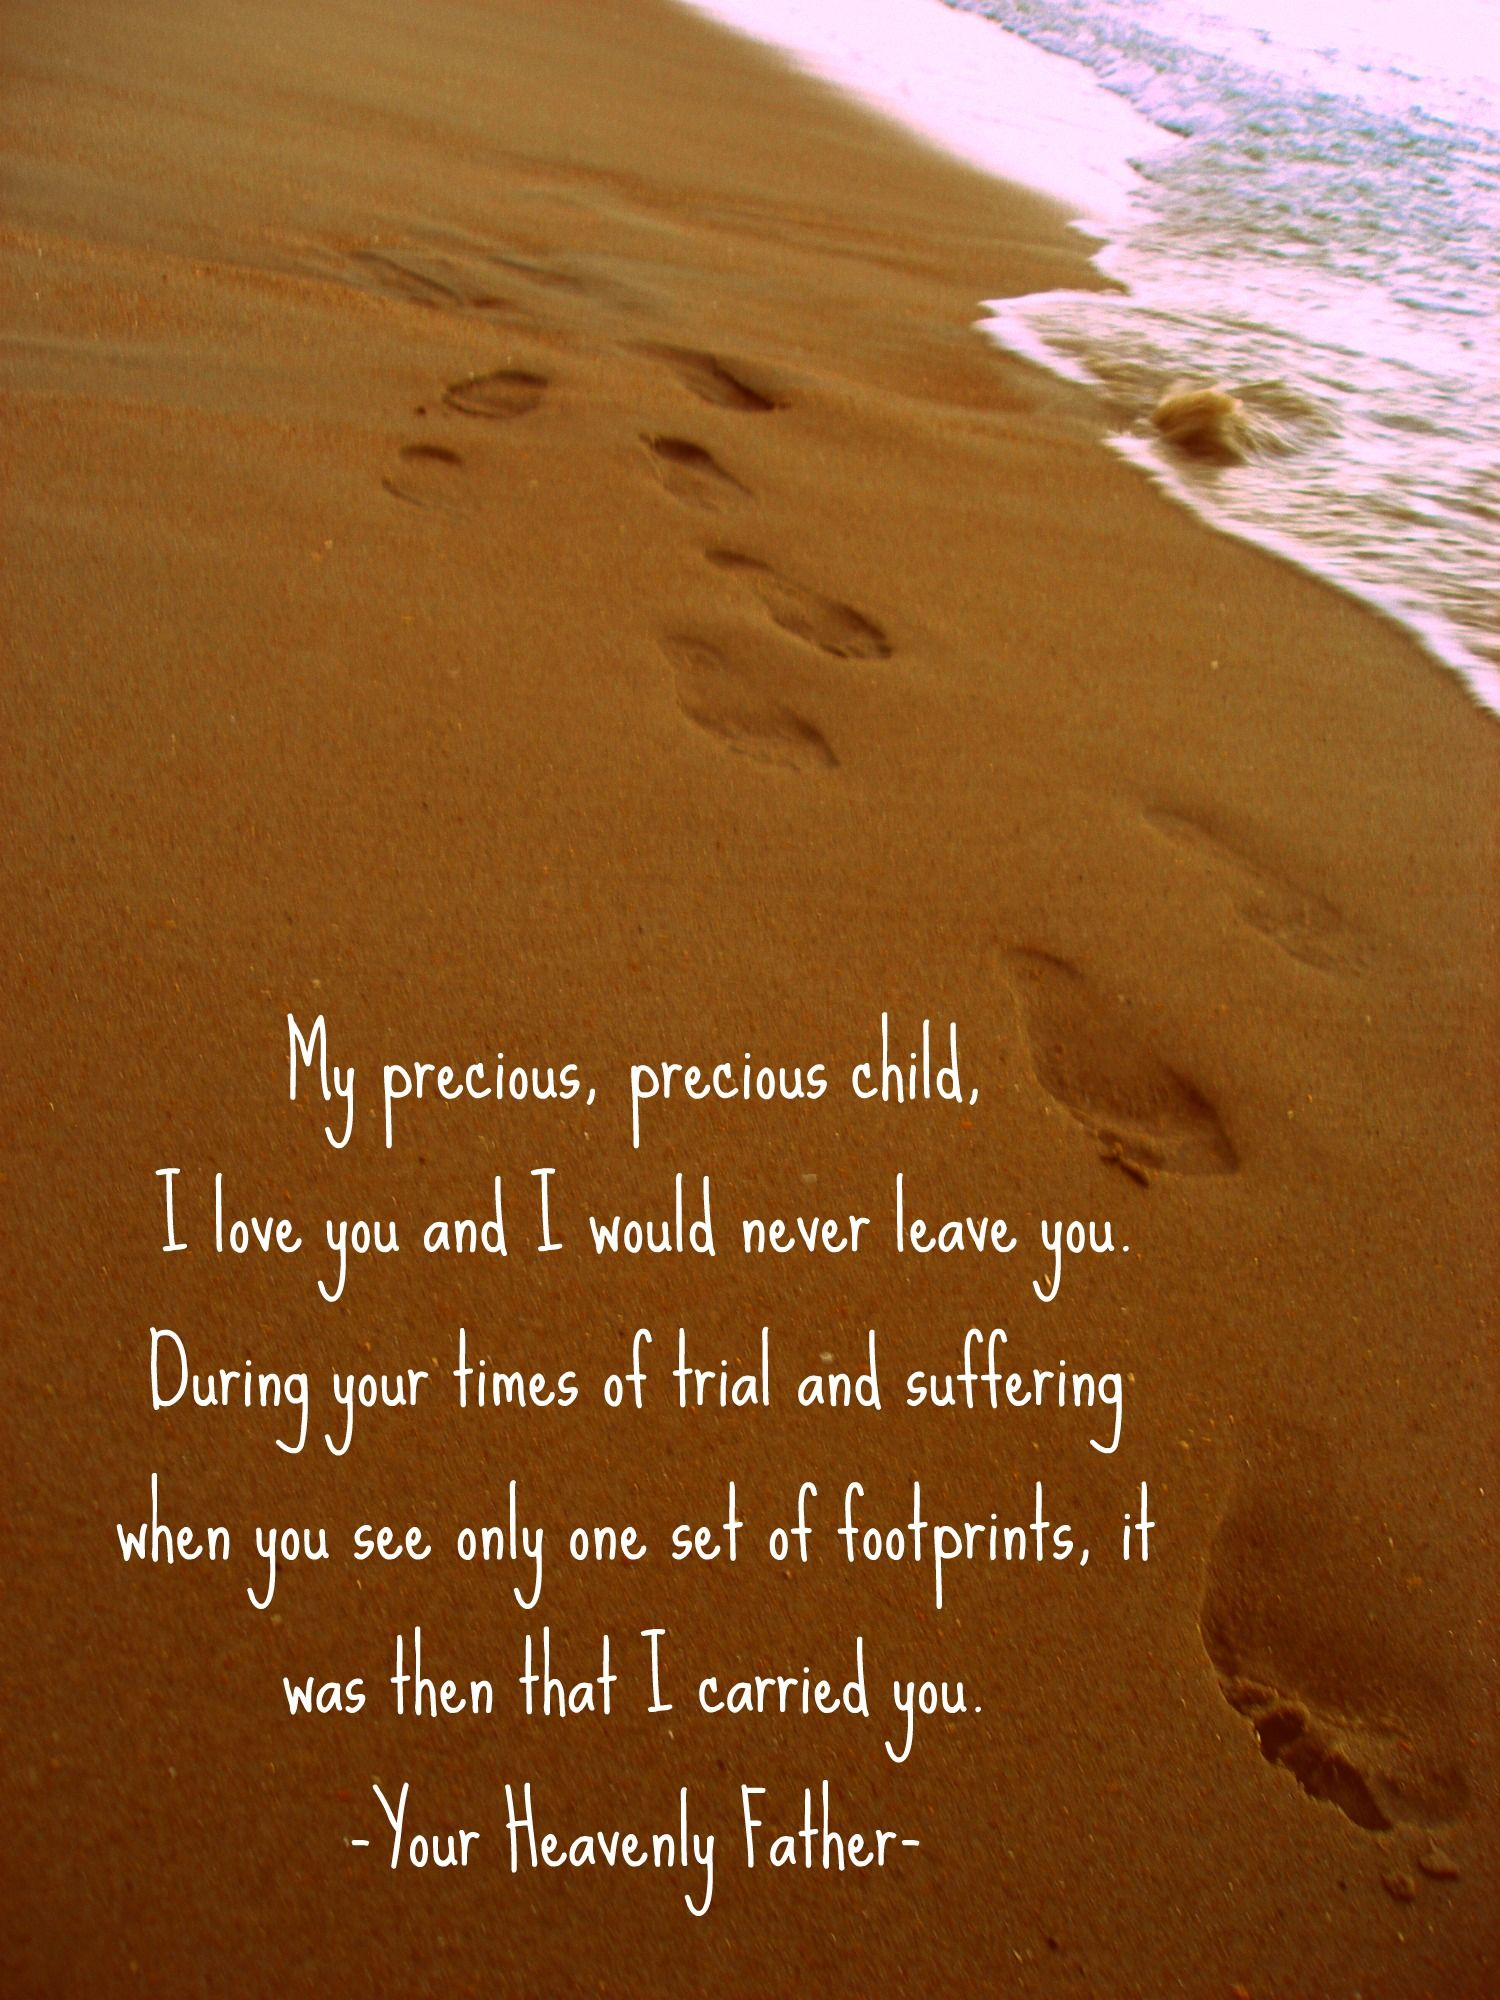 Footprints In The Sand Poem This Is Such A Precious Poem Words